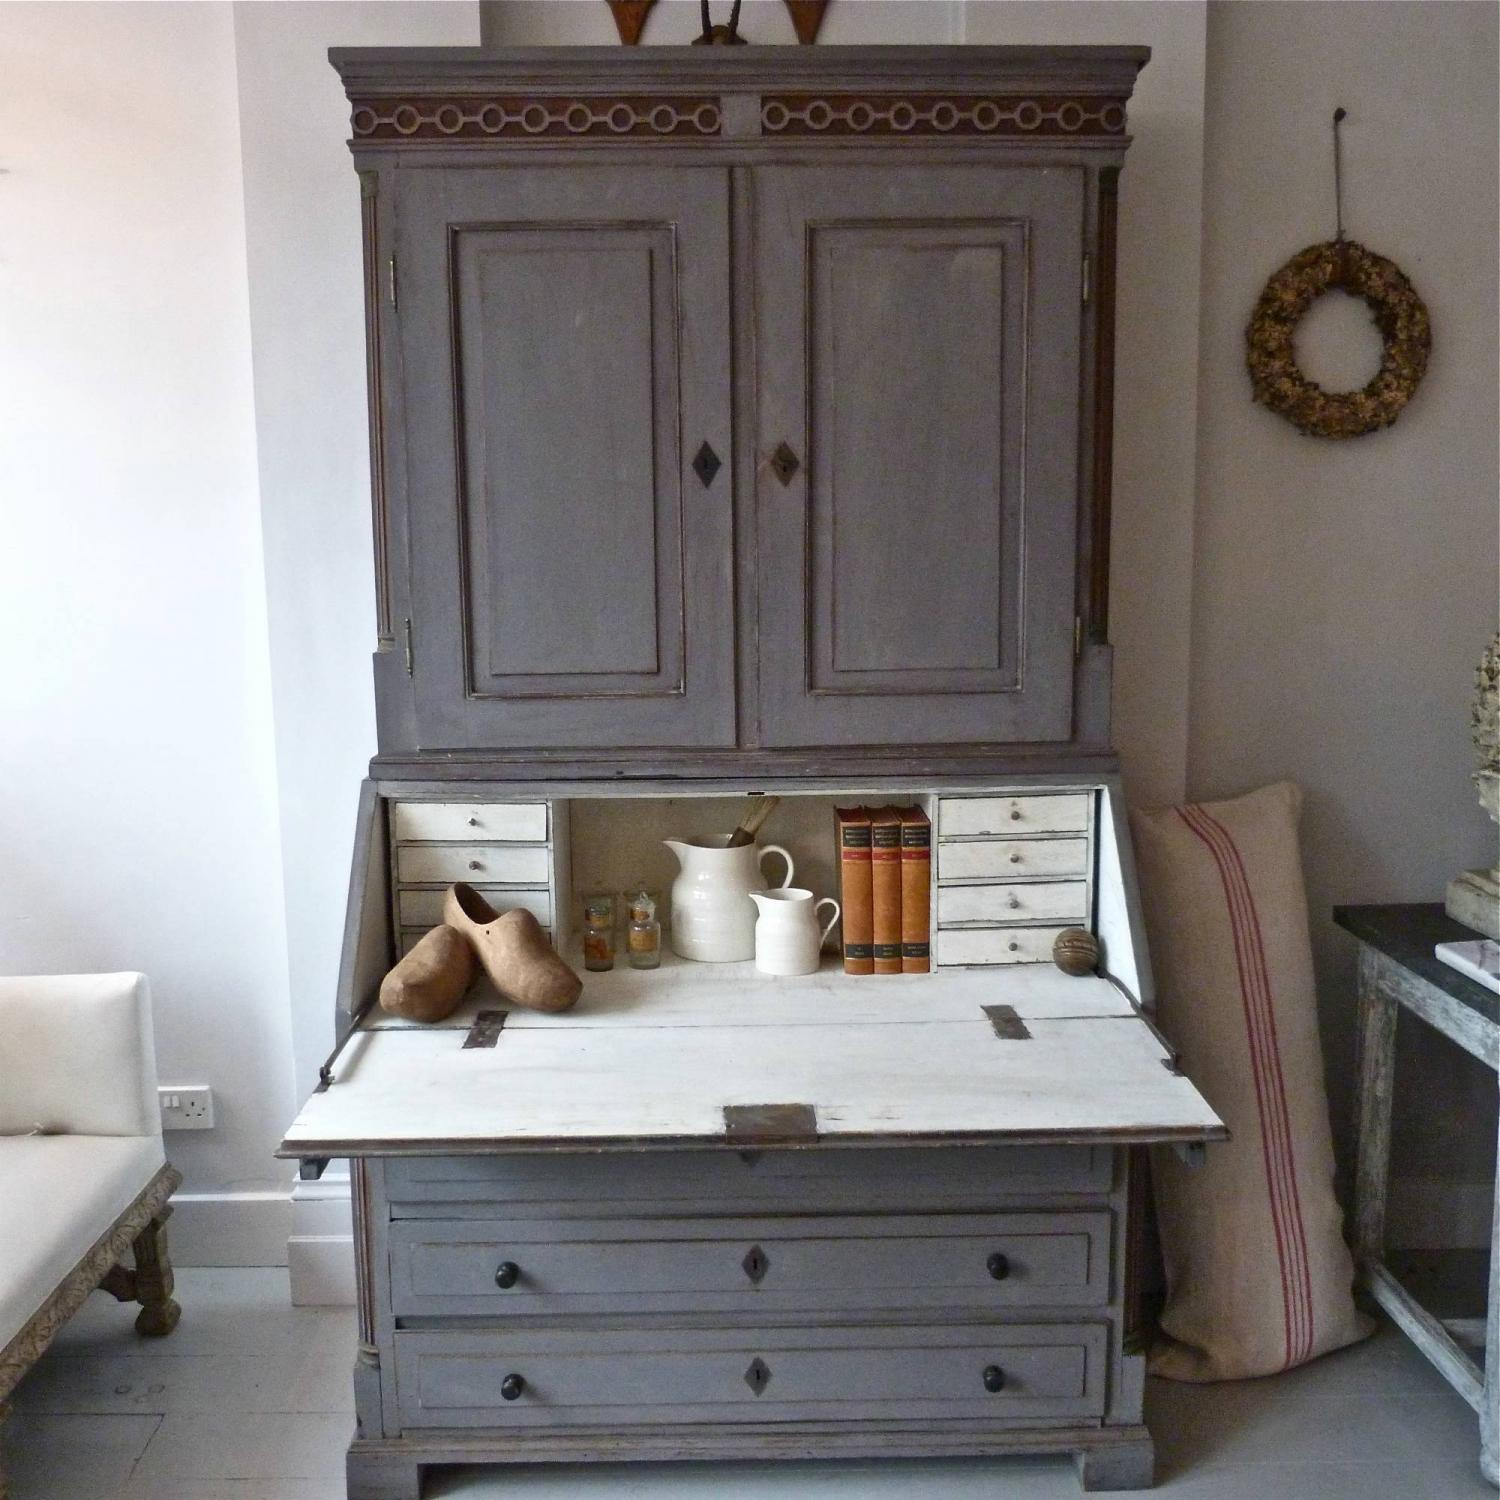 18TH CENTURY DANISH GUSTAVIAN SECRETAIRE